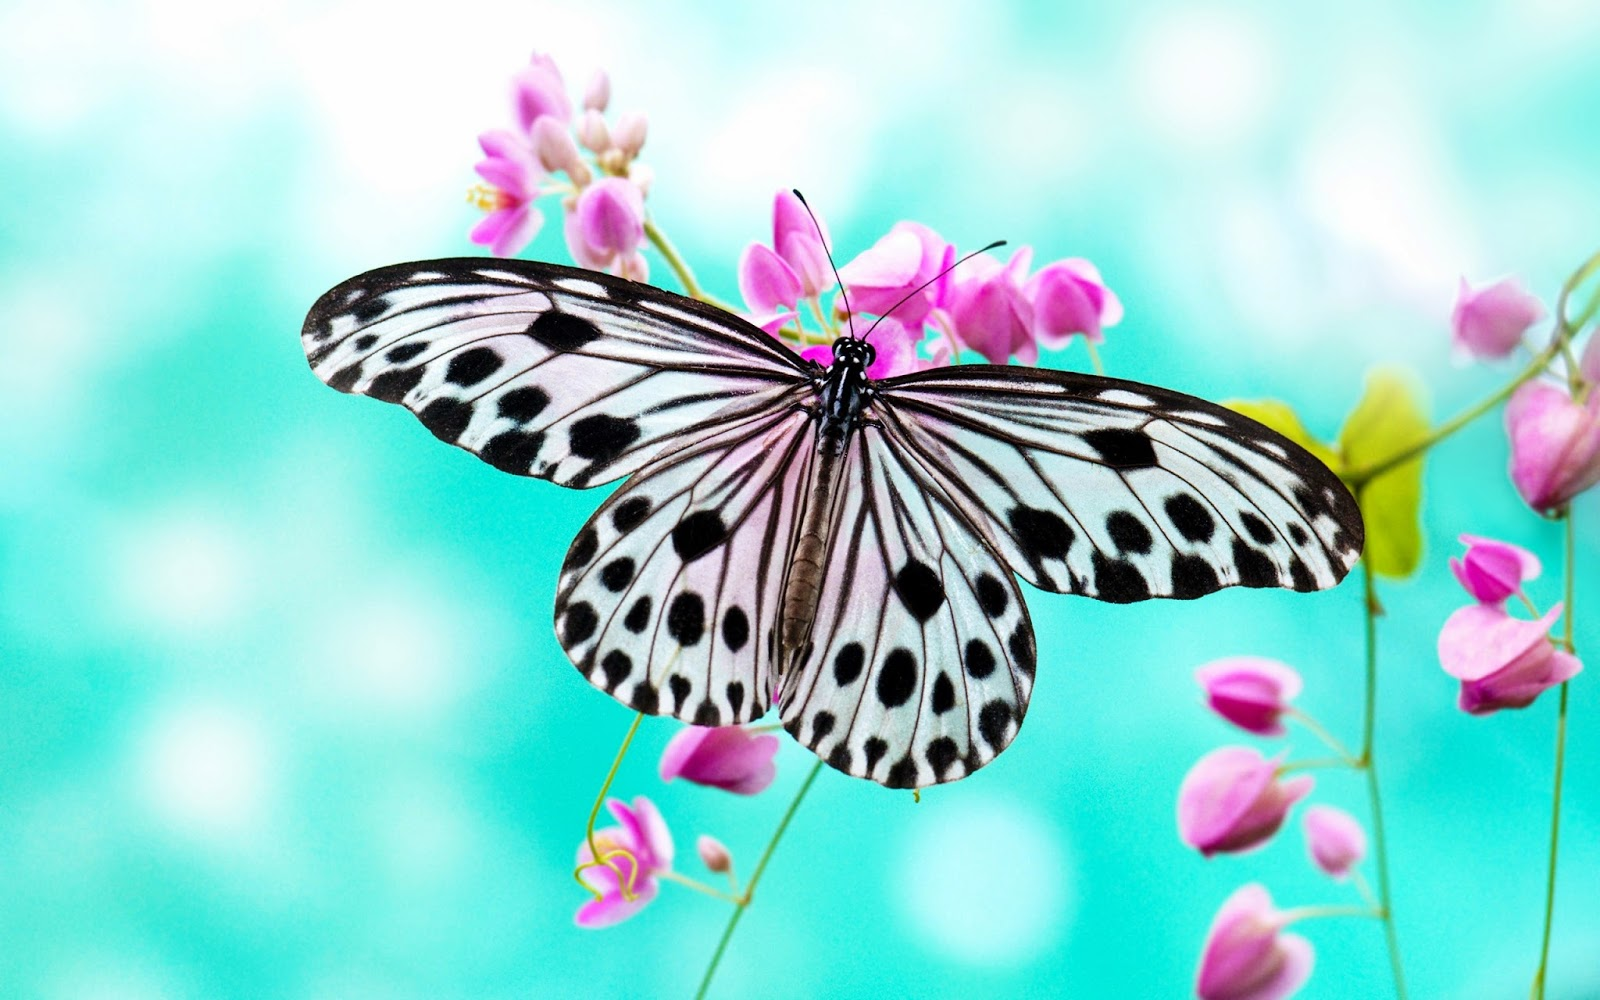 Butterfly wallpapers hd beautiful wallpapers collection 2014 for Butterfly in a flower